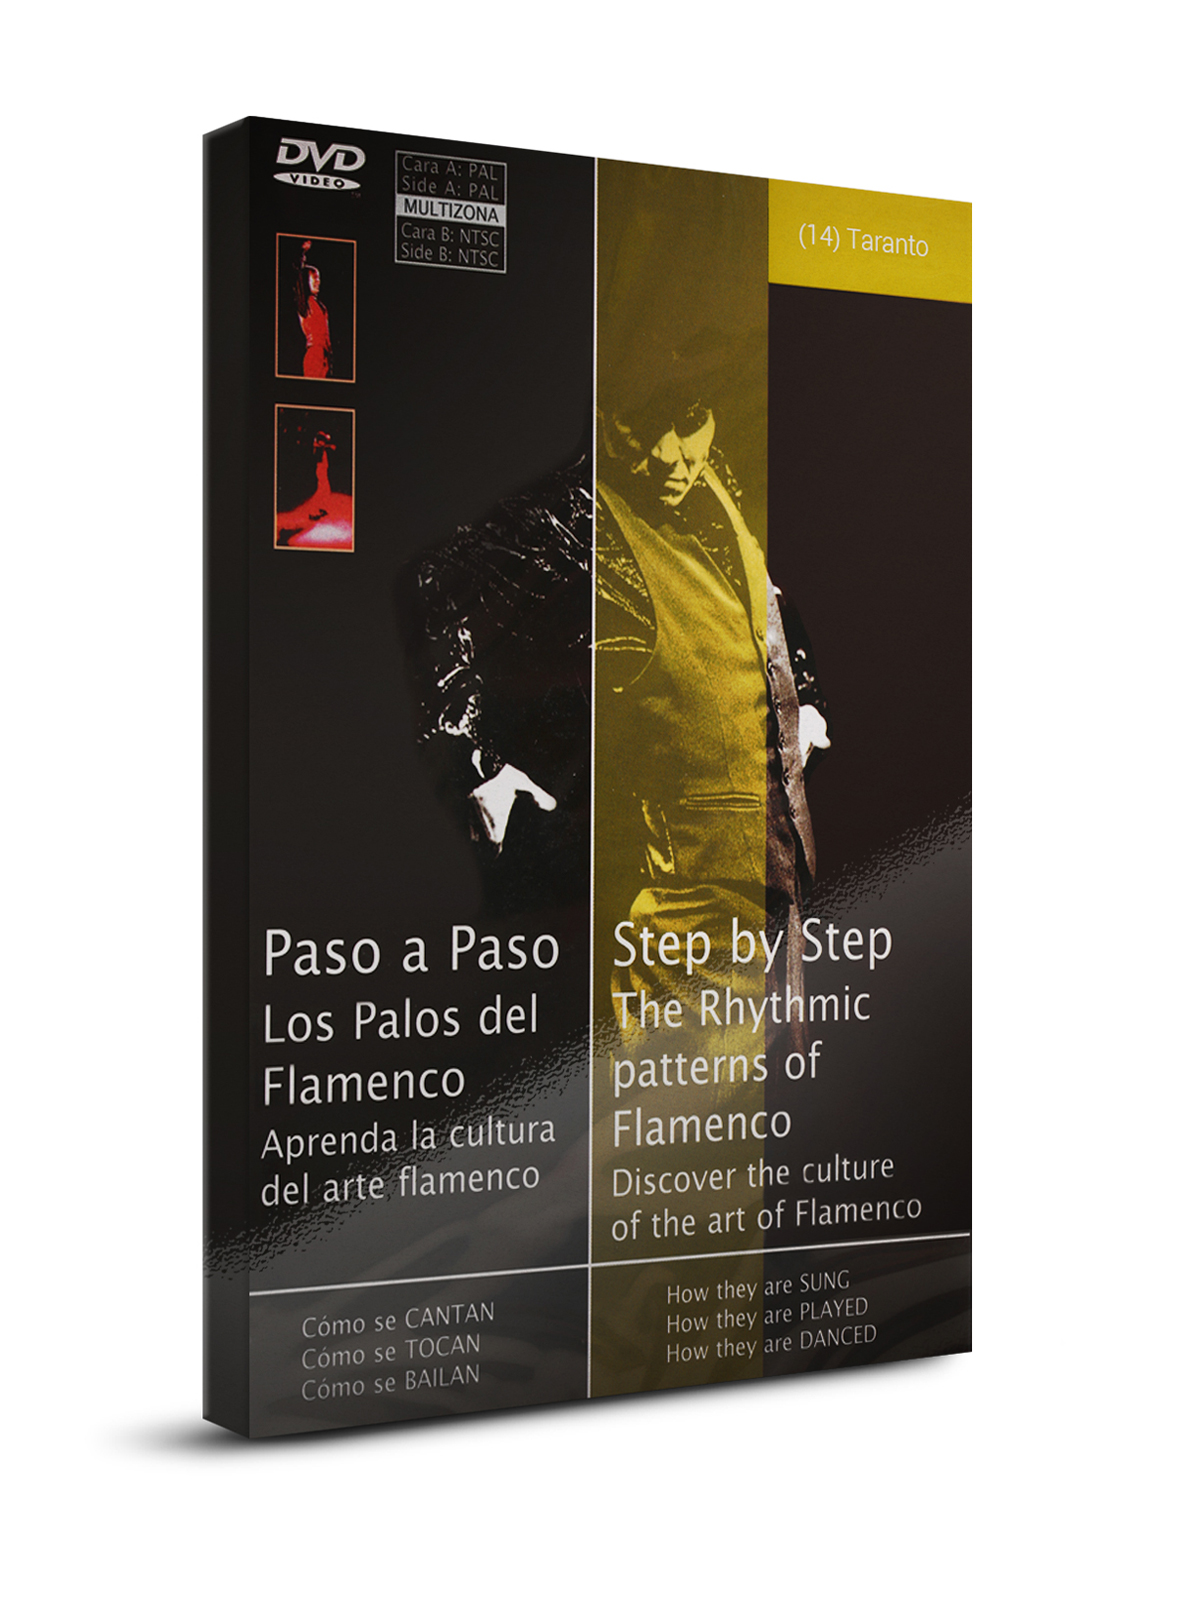 Flamenco dance classes Taranto DVD